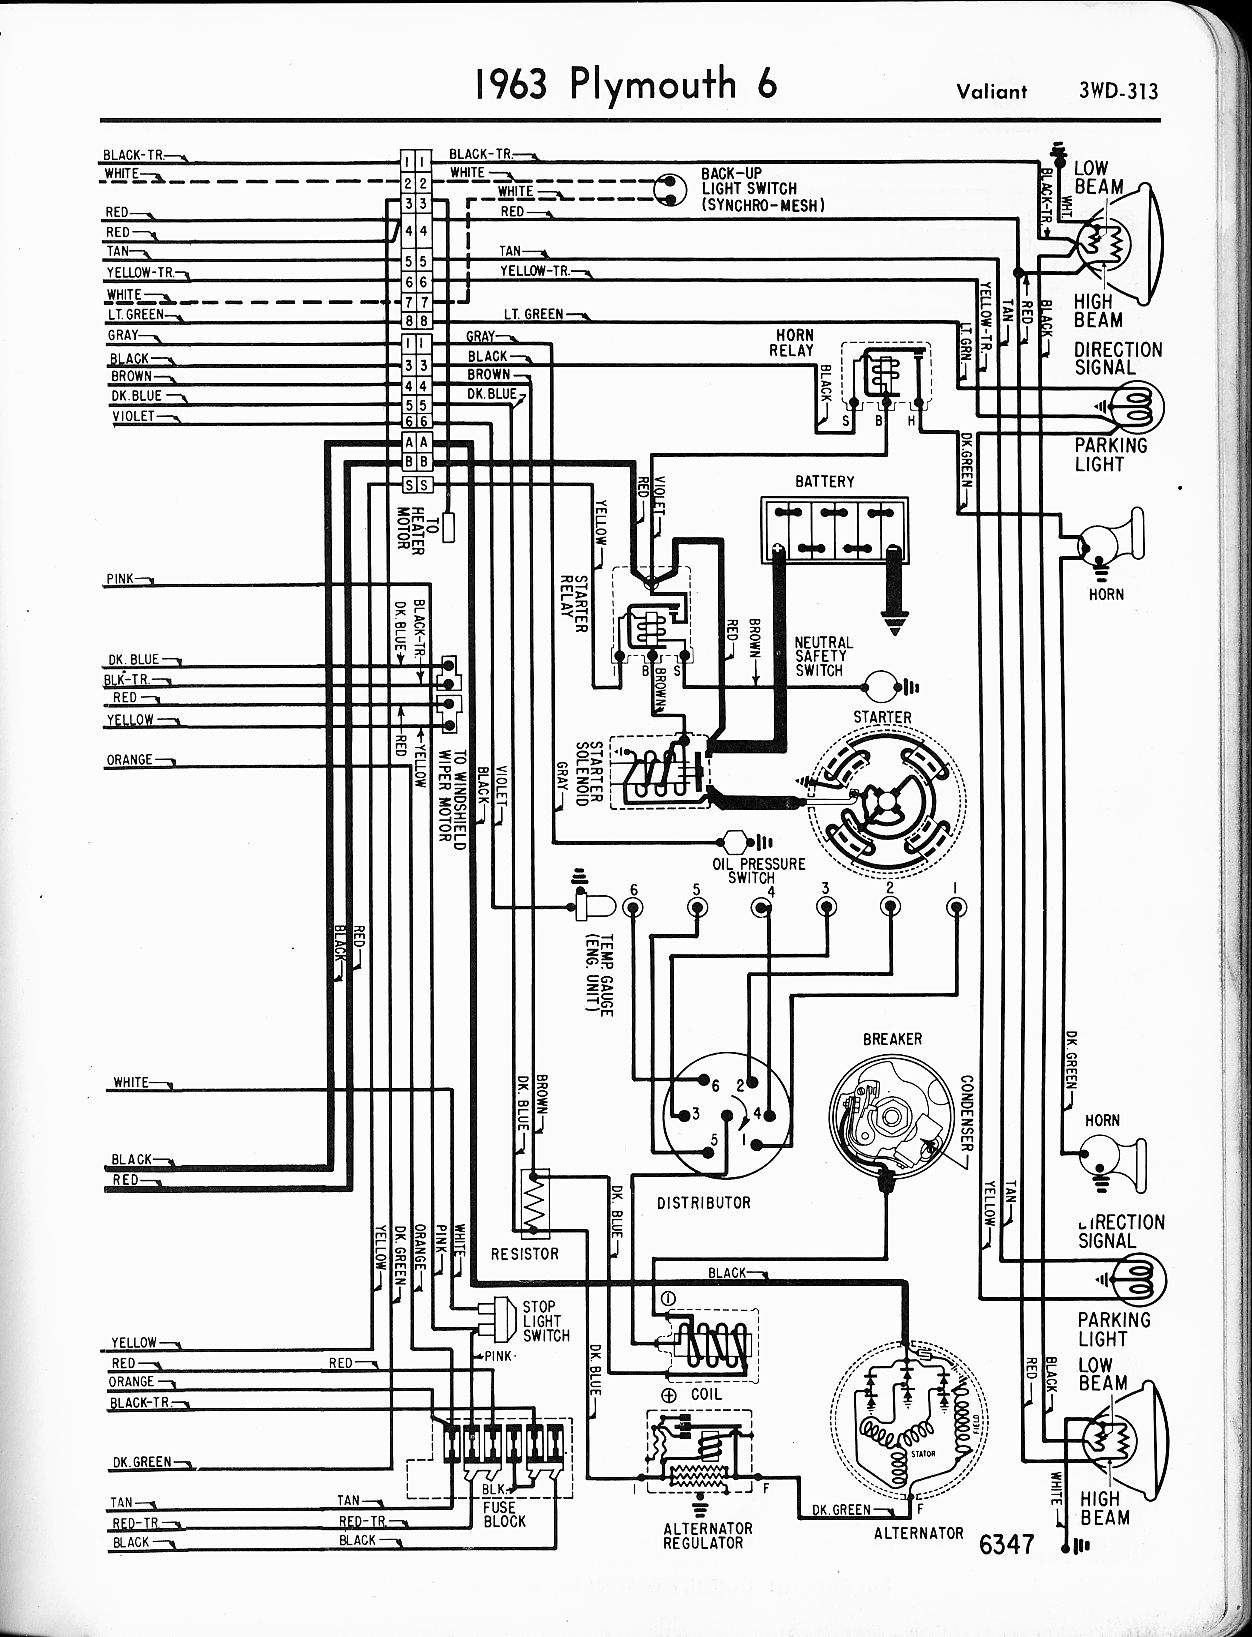 [WRG-8096] 69 Plymouth Roadrunner Wiring Diagram